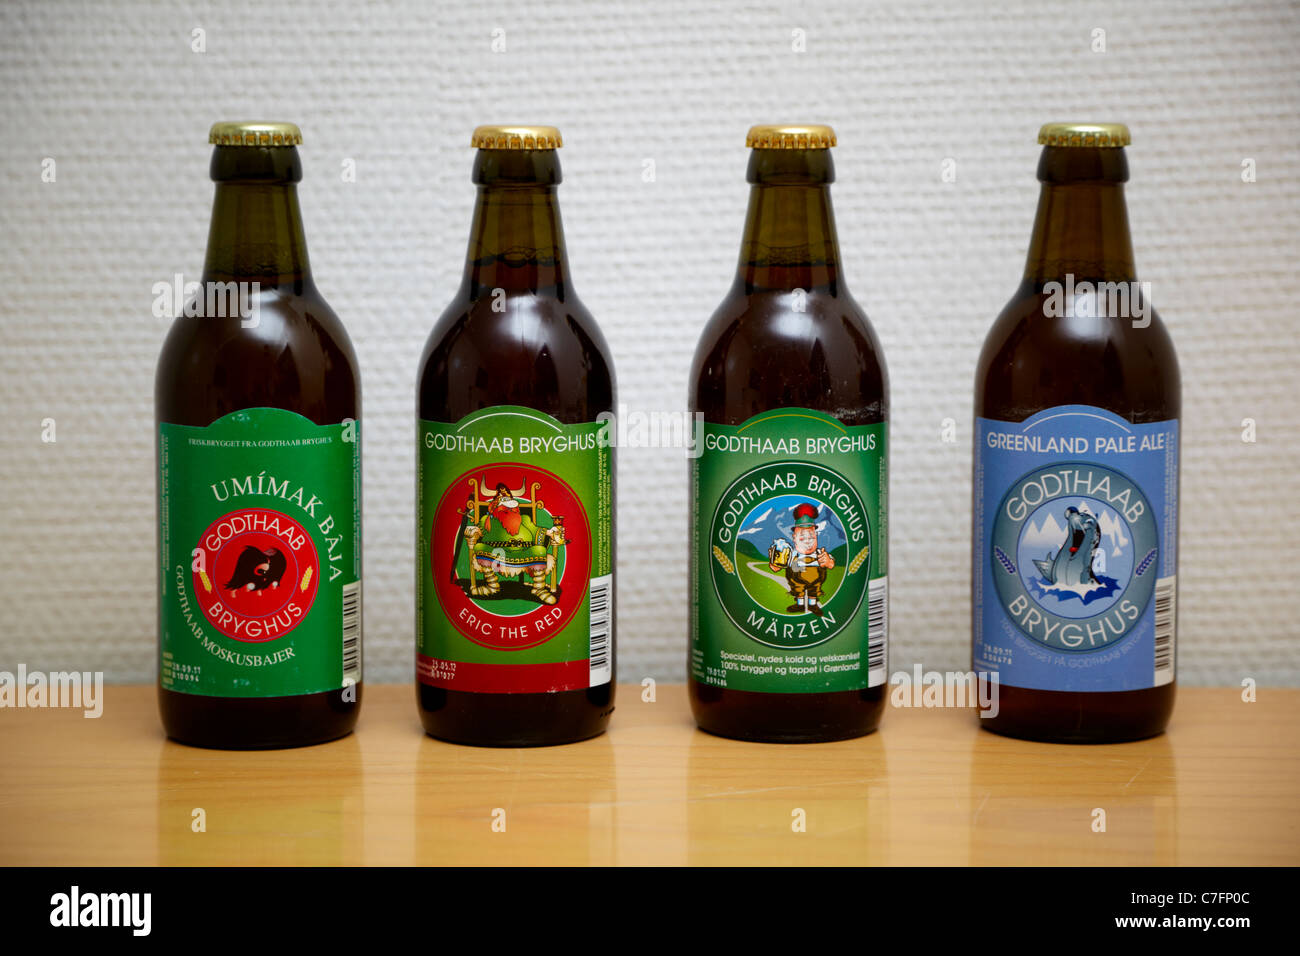 An assortment of Greenlandic beers from Godthab Bryghus brewery - Stock Image